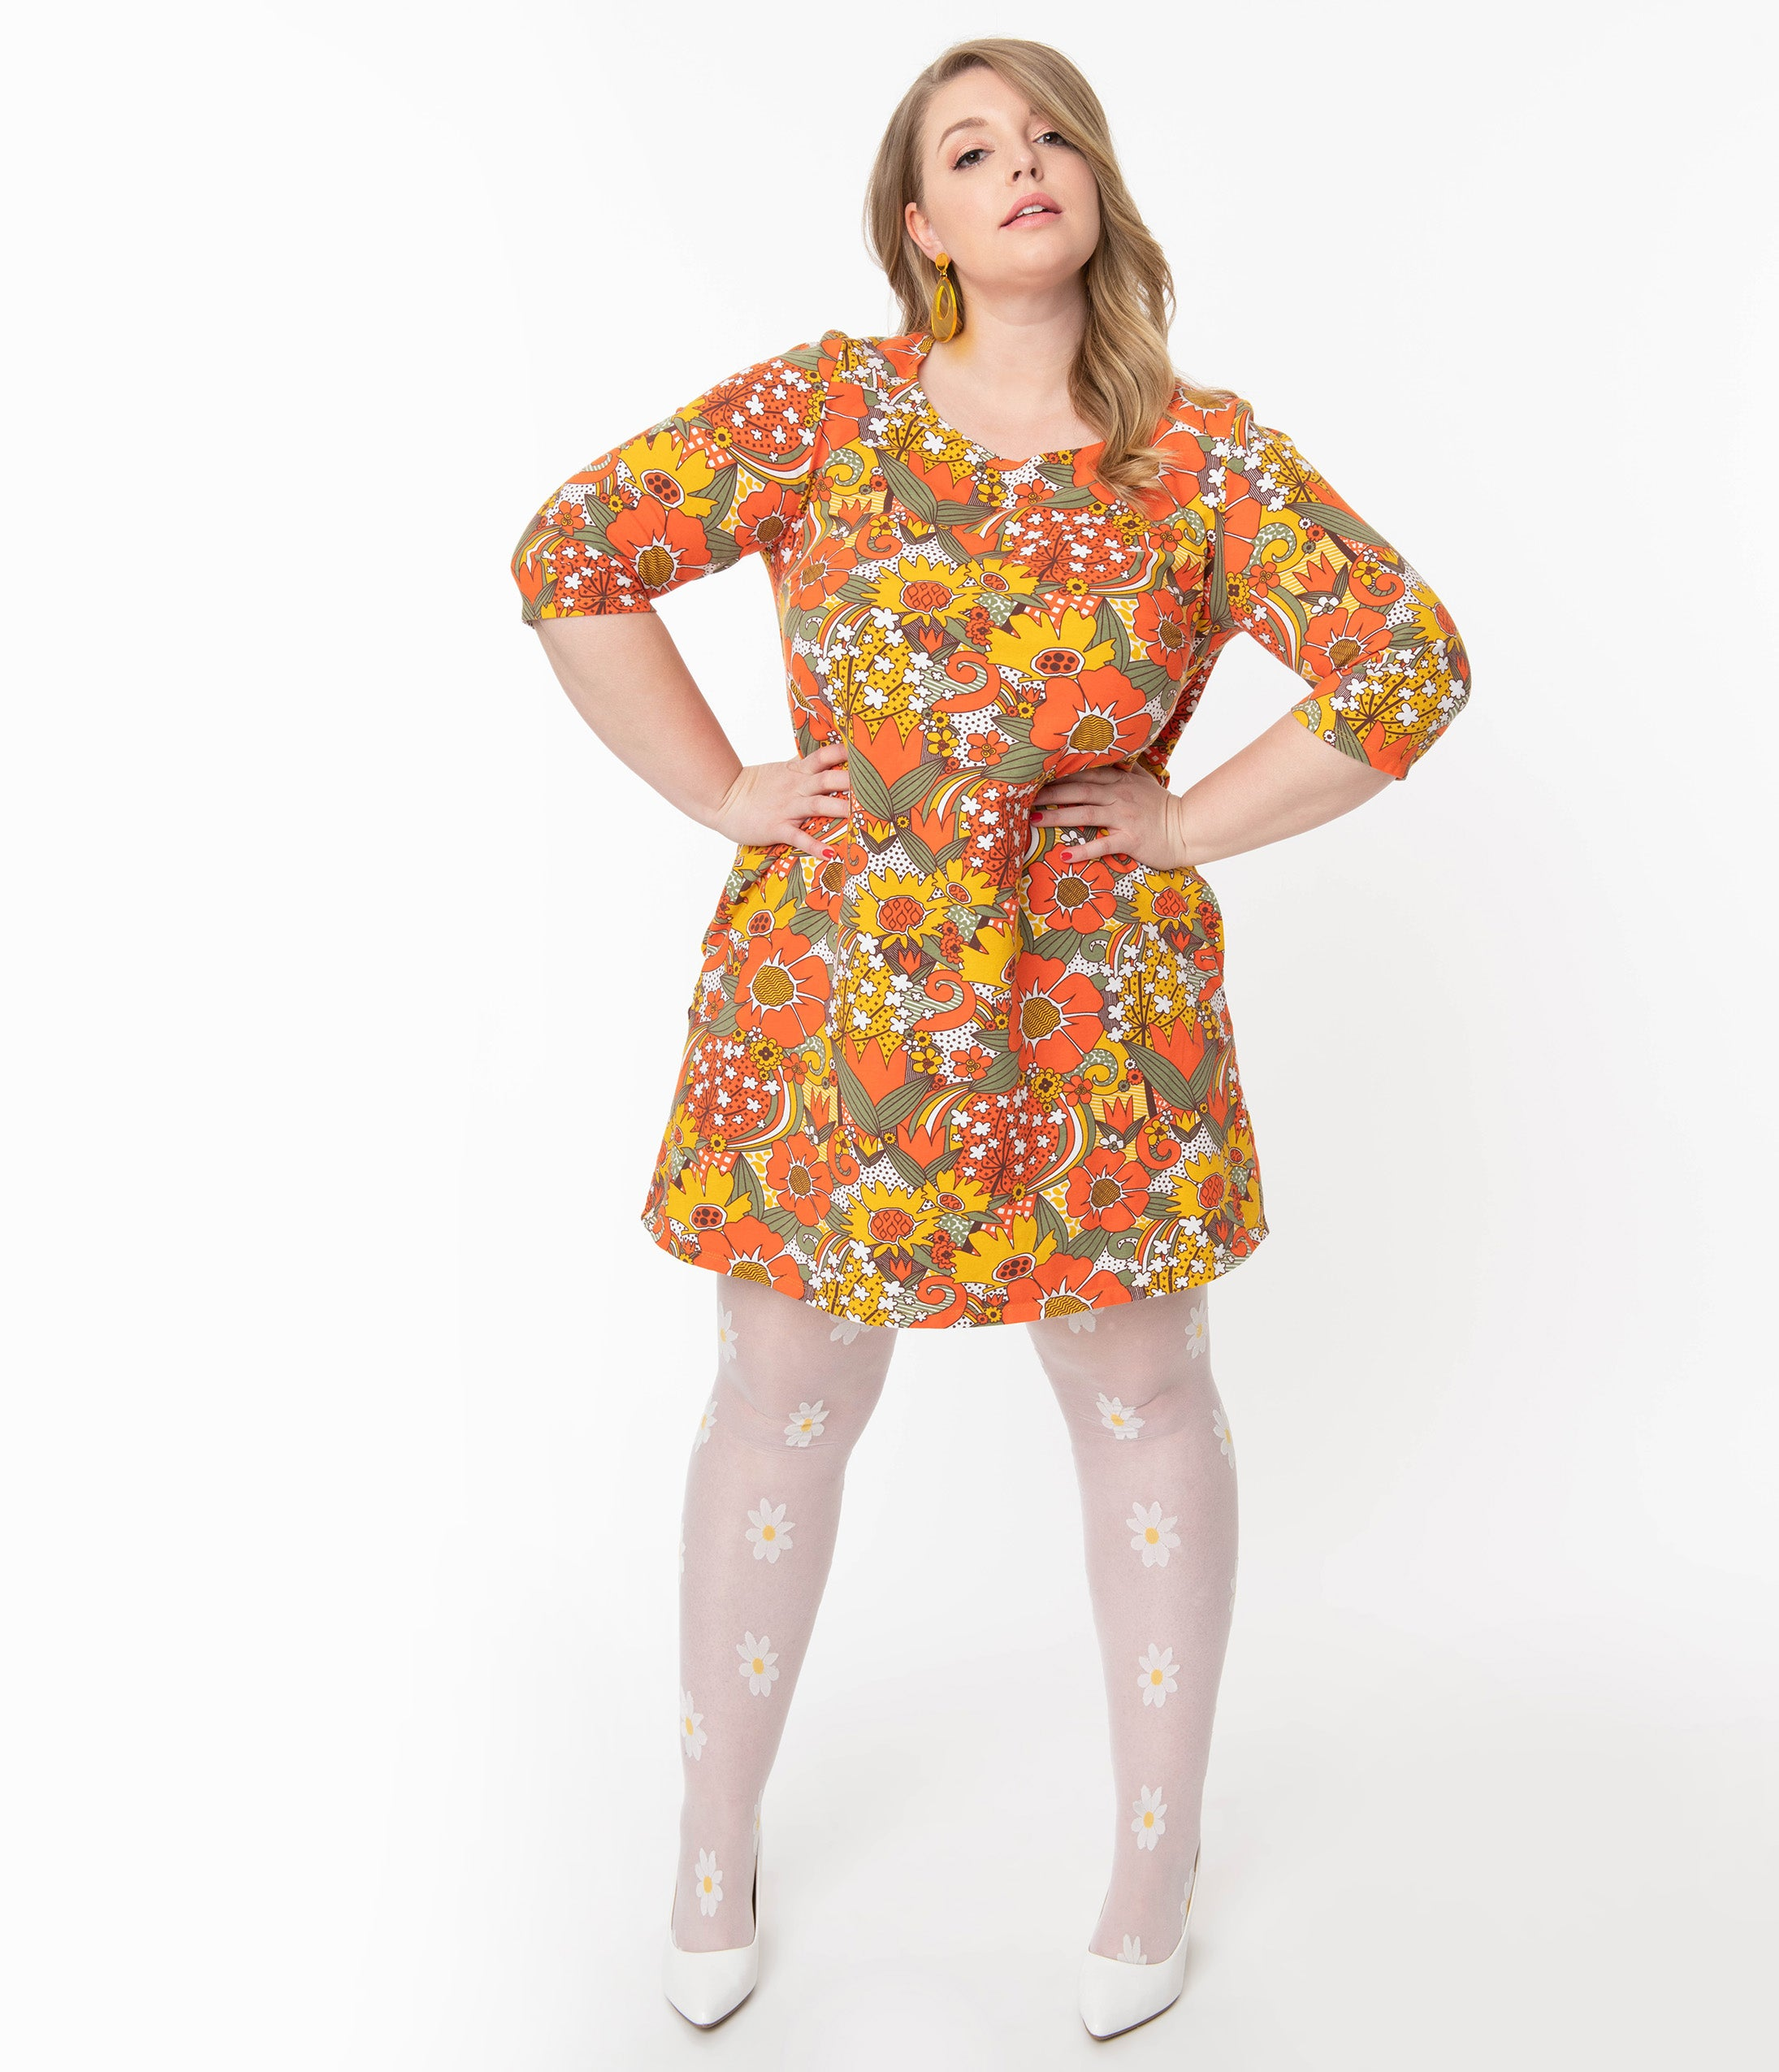 Vintage Style Dresses | Vintage Inspired Dresses Plus Size 1960S Orange  Green Retro Floral Print Tunic Dress $68.00 AT vintagedancer.com